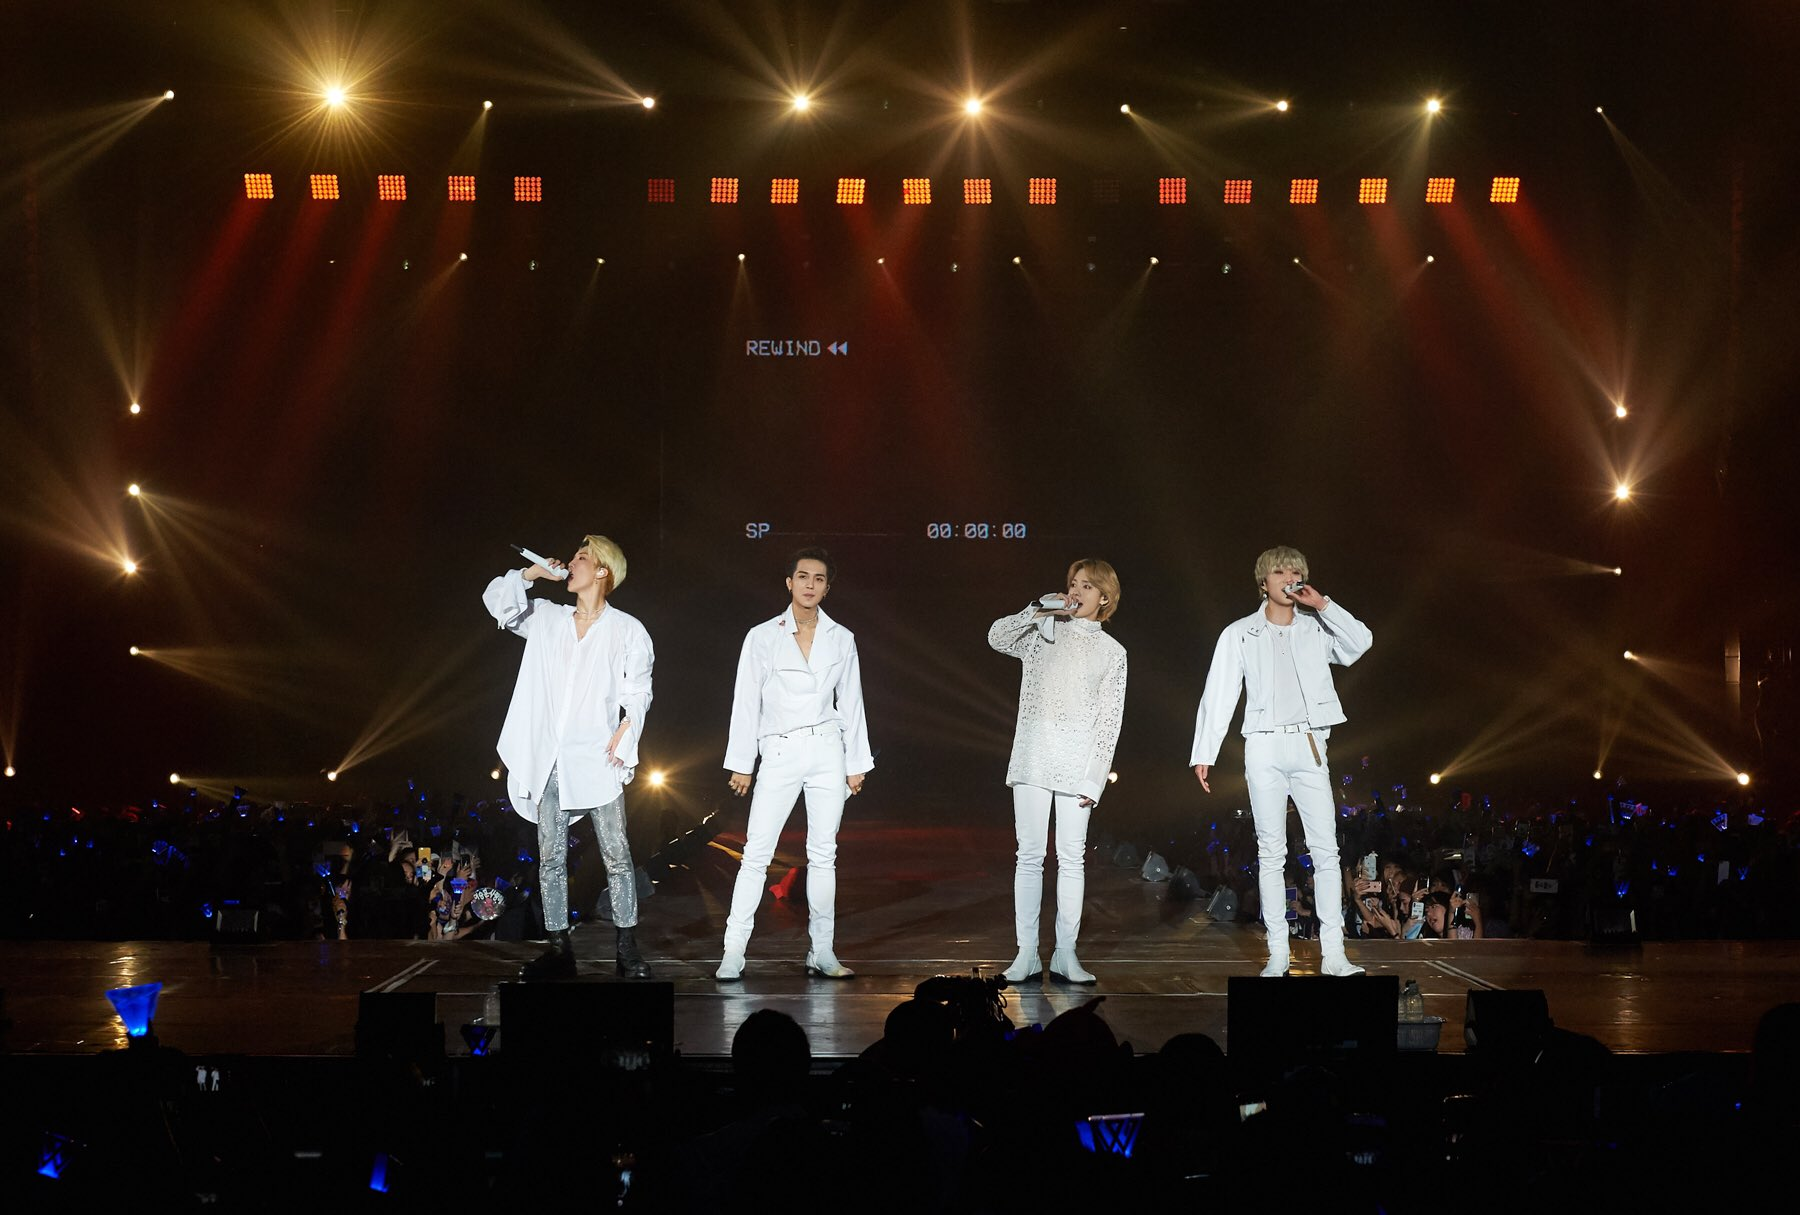 "Live Nation Kpop on Twitter: ""??WINNER 2018 EVERYWHERE TOUR in BANGKOK!Thai INNER CIRCLE, you were amazing crowd???Next is SINGAPORE!?-2018. 10. 21?credit: #YGEntertainment-#위너 #WINNER #EVERYWHERETOUR #콘서트 #concerts #EverywhereTourinBKK #LiveNationKpop #Kpop #more_pics_on_facebook… https://t.co/ozJFeCQ5lN"""